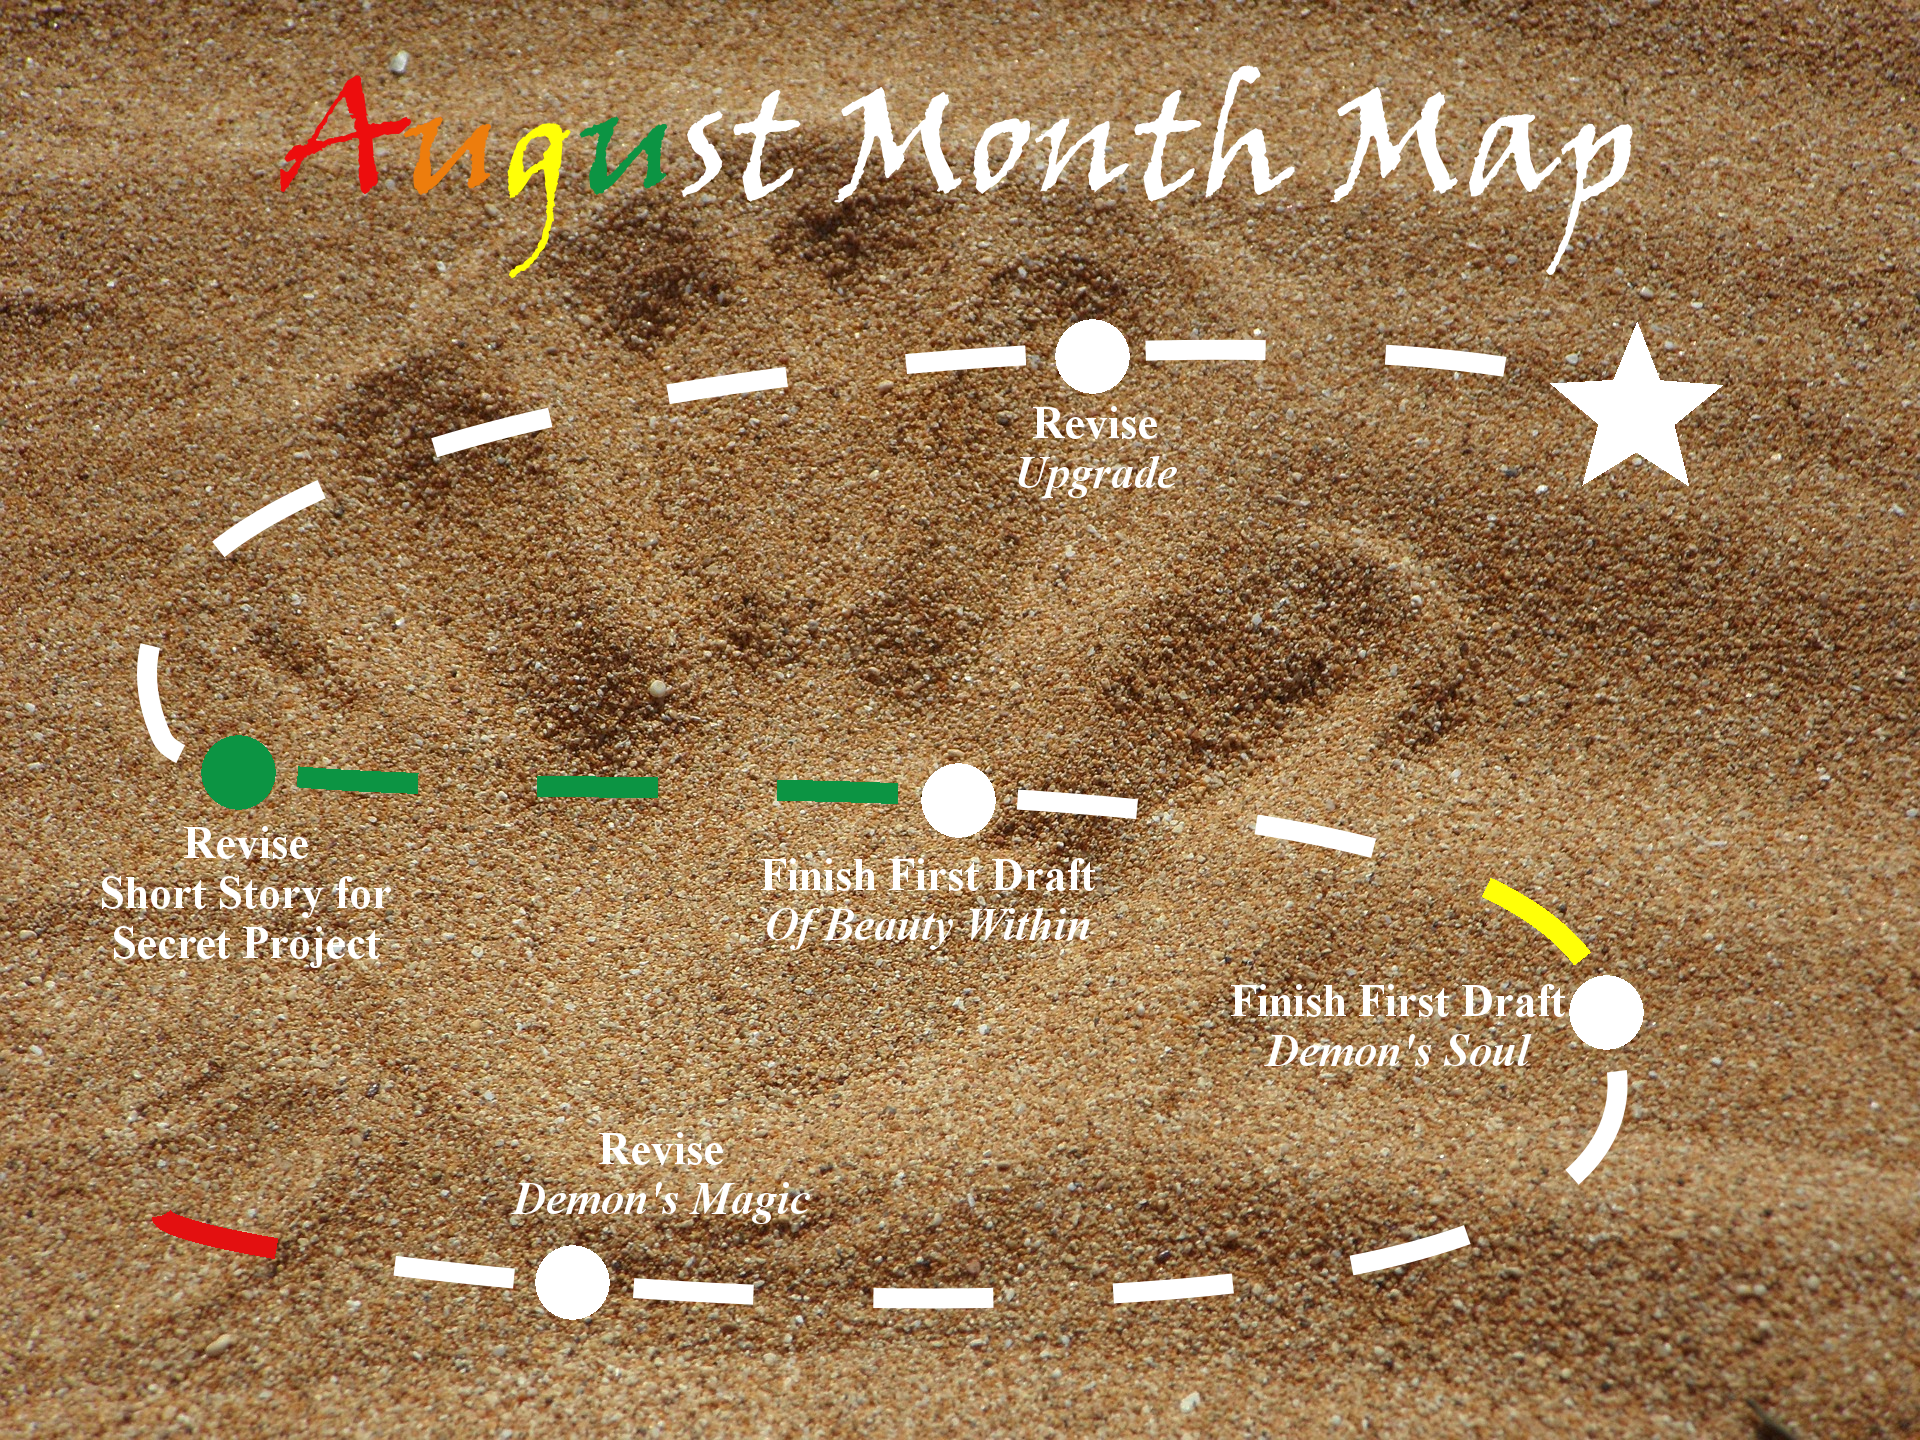 Ensign's Log, Entry 28: August Month Map–Week 1